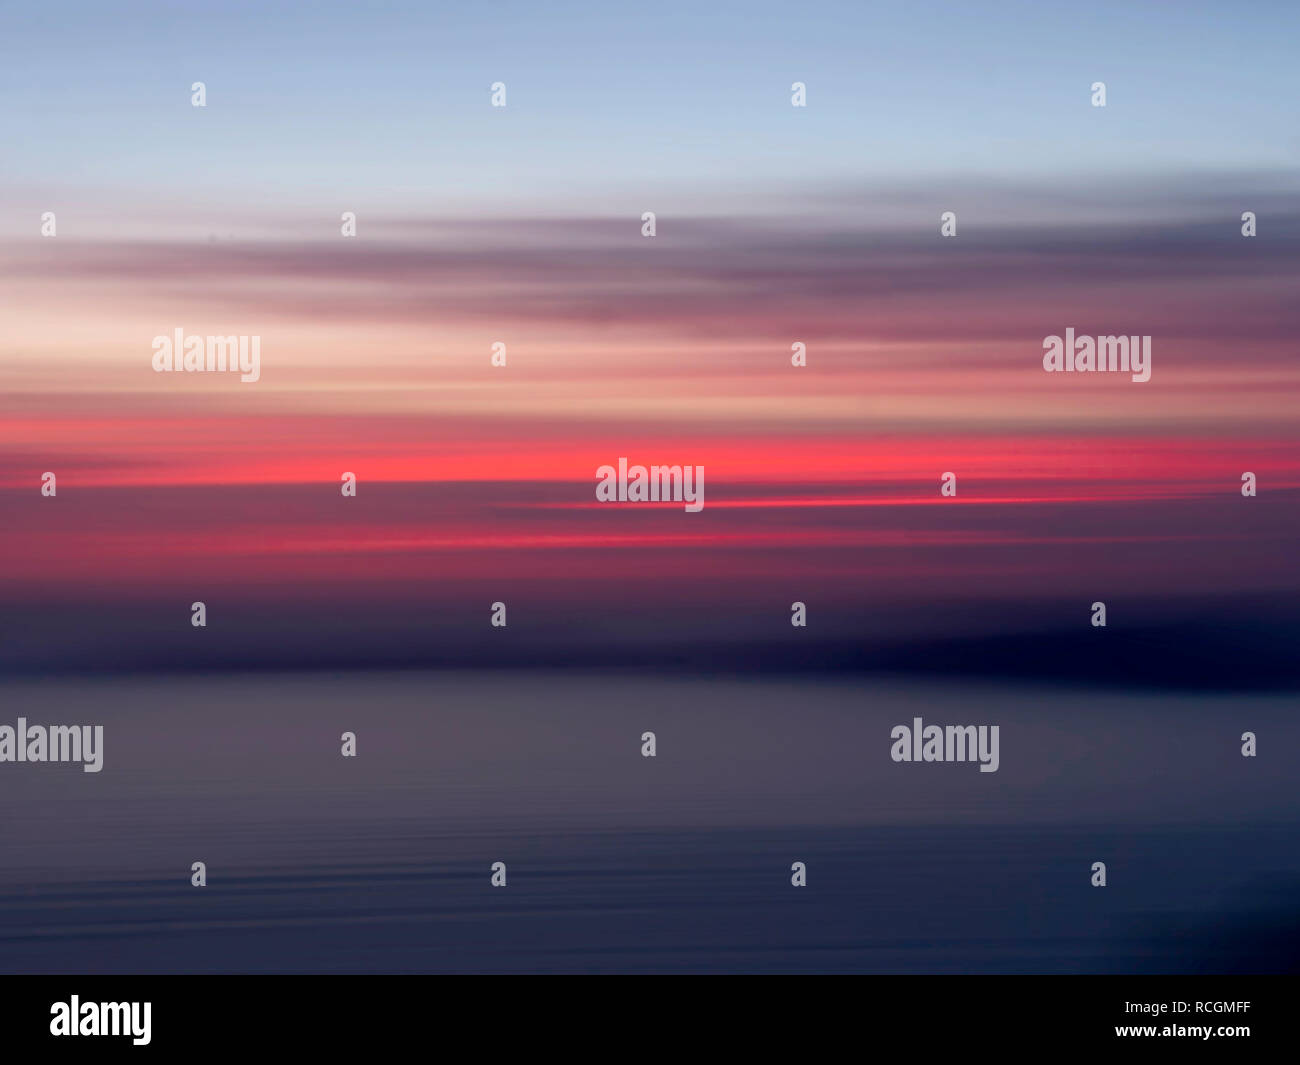 Palmaria sunset, scenic Liguria with intentional camera movement for beautiful blurry effect. Gulf of poets. - Stock Image